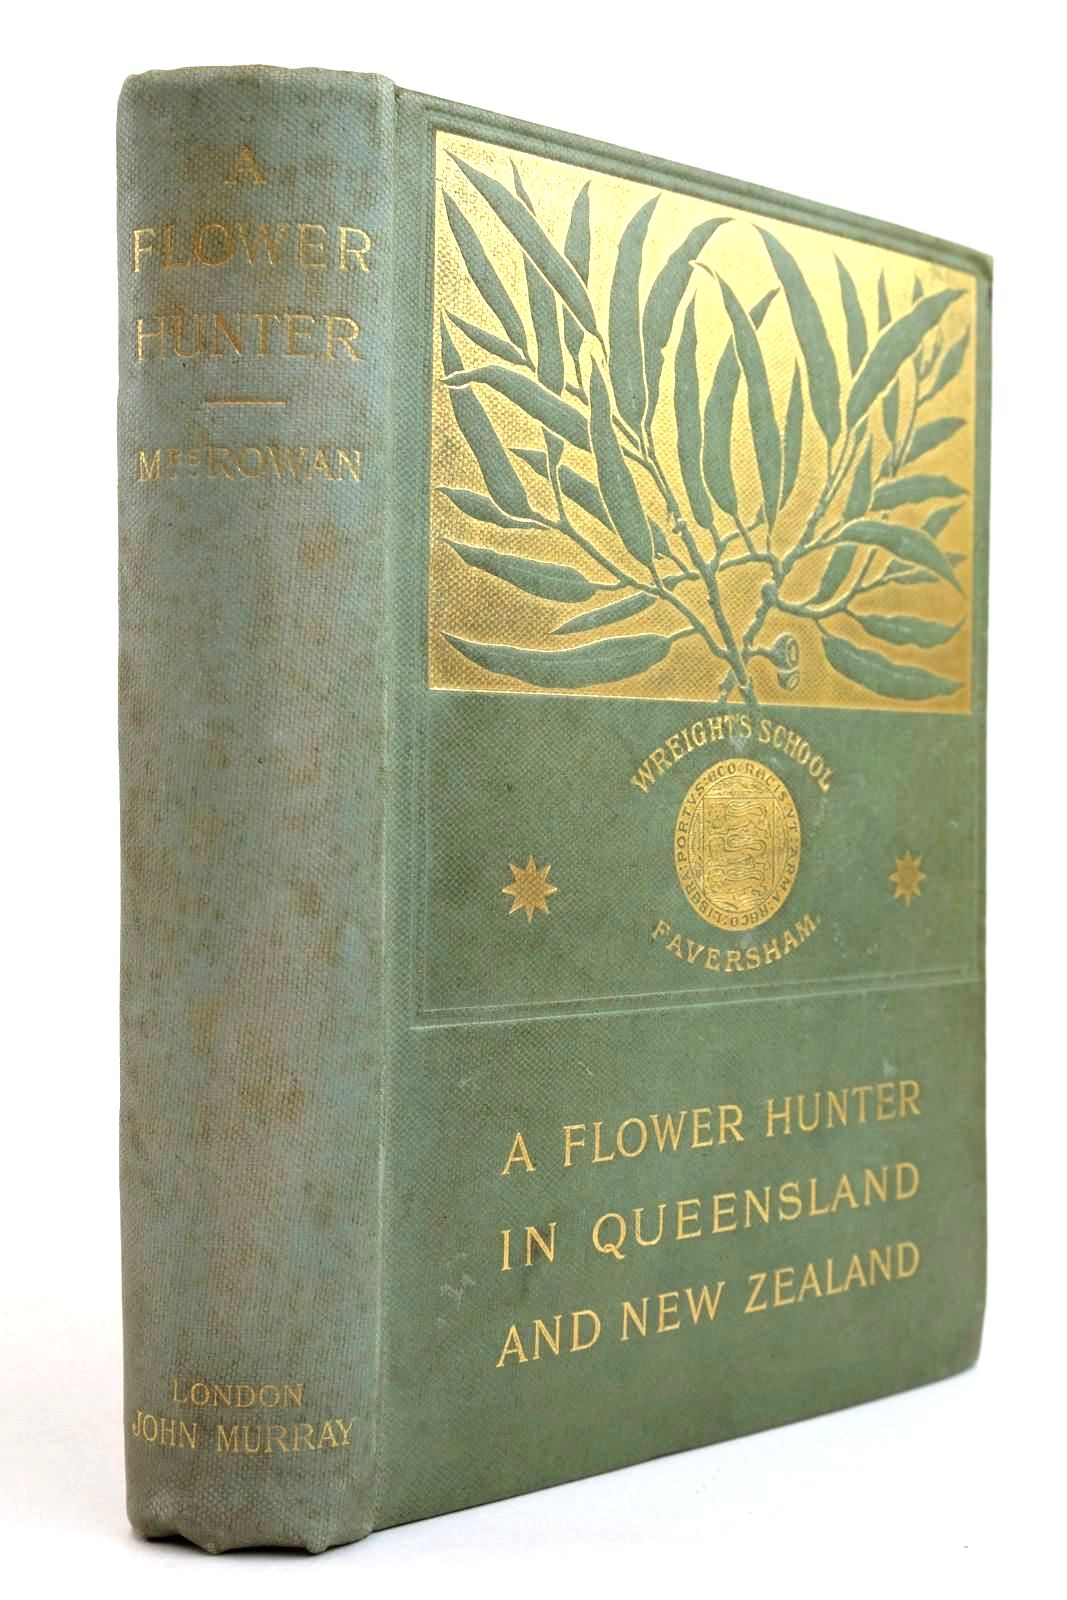 Photo of A FLOWER-HUNTER IN QUEENSLAND & NEW ZEALAND- Stock Number: 2134444